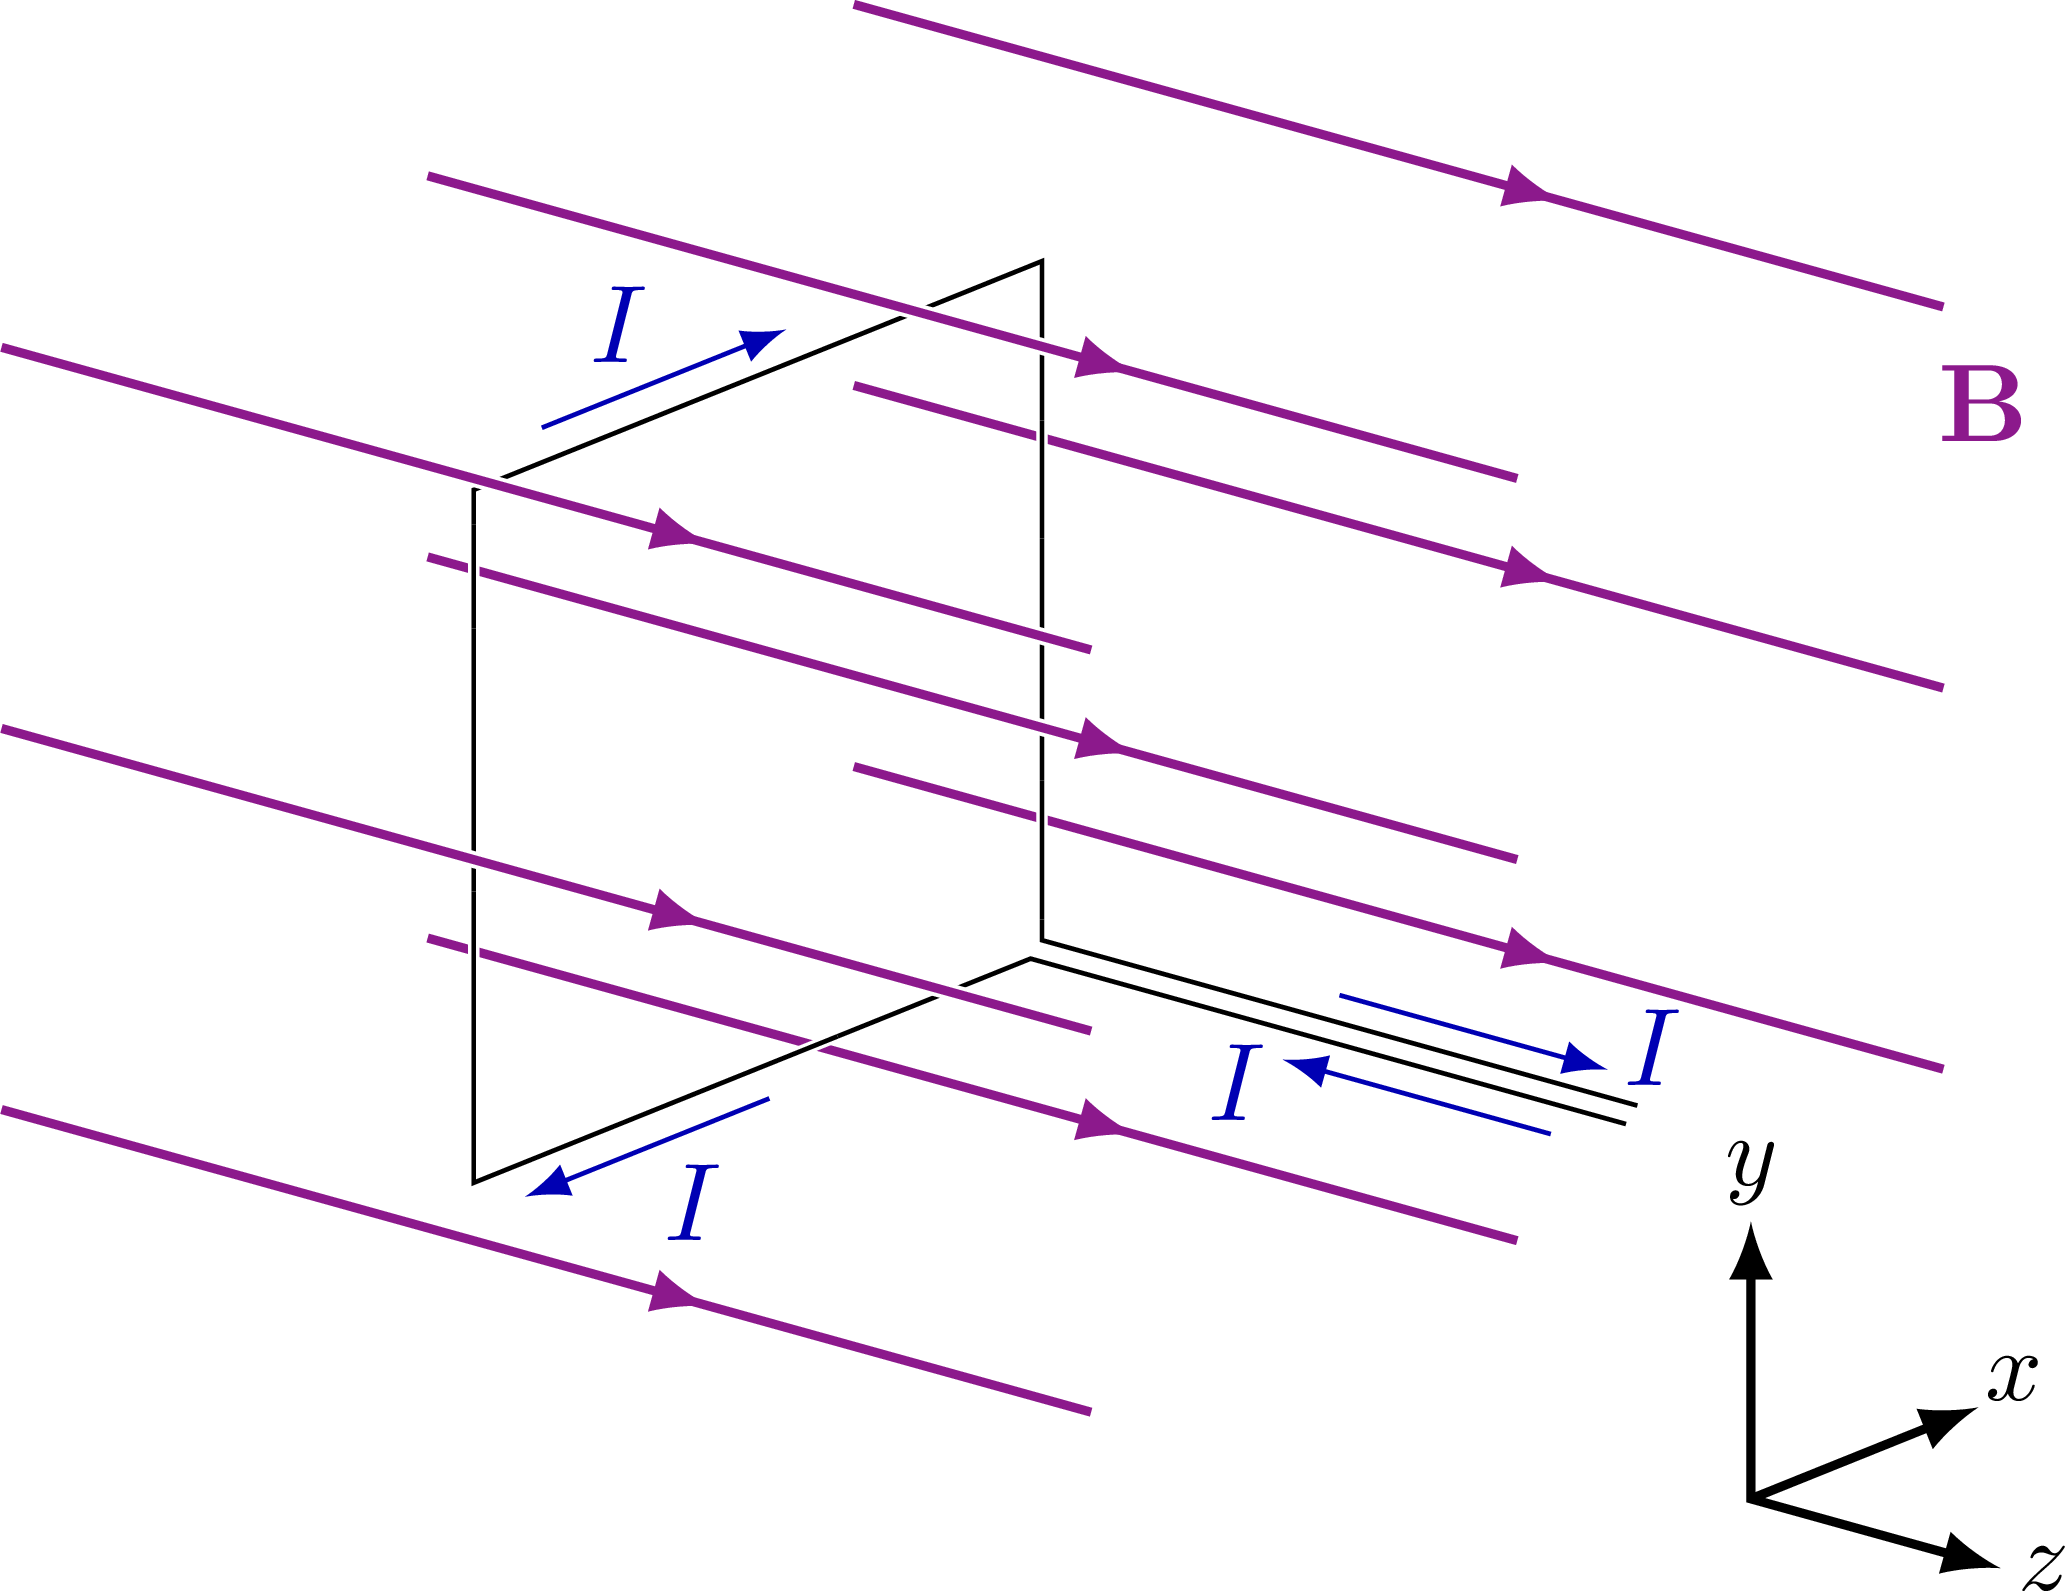 magnetic_force_current-004.png